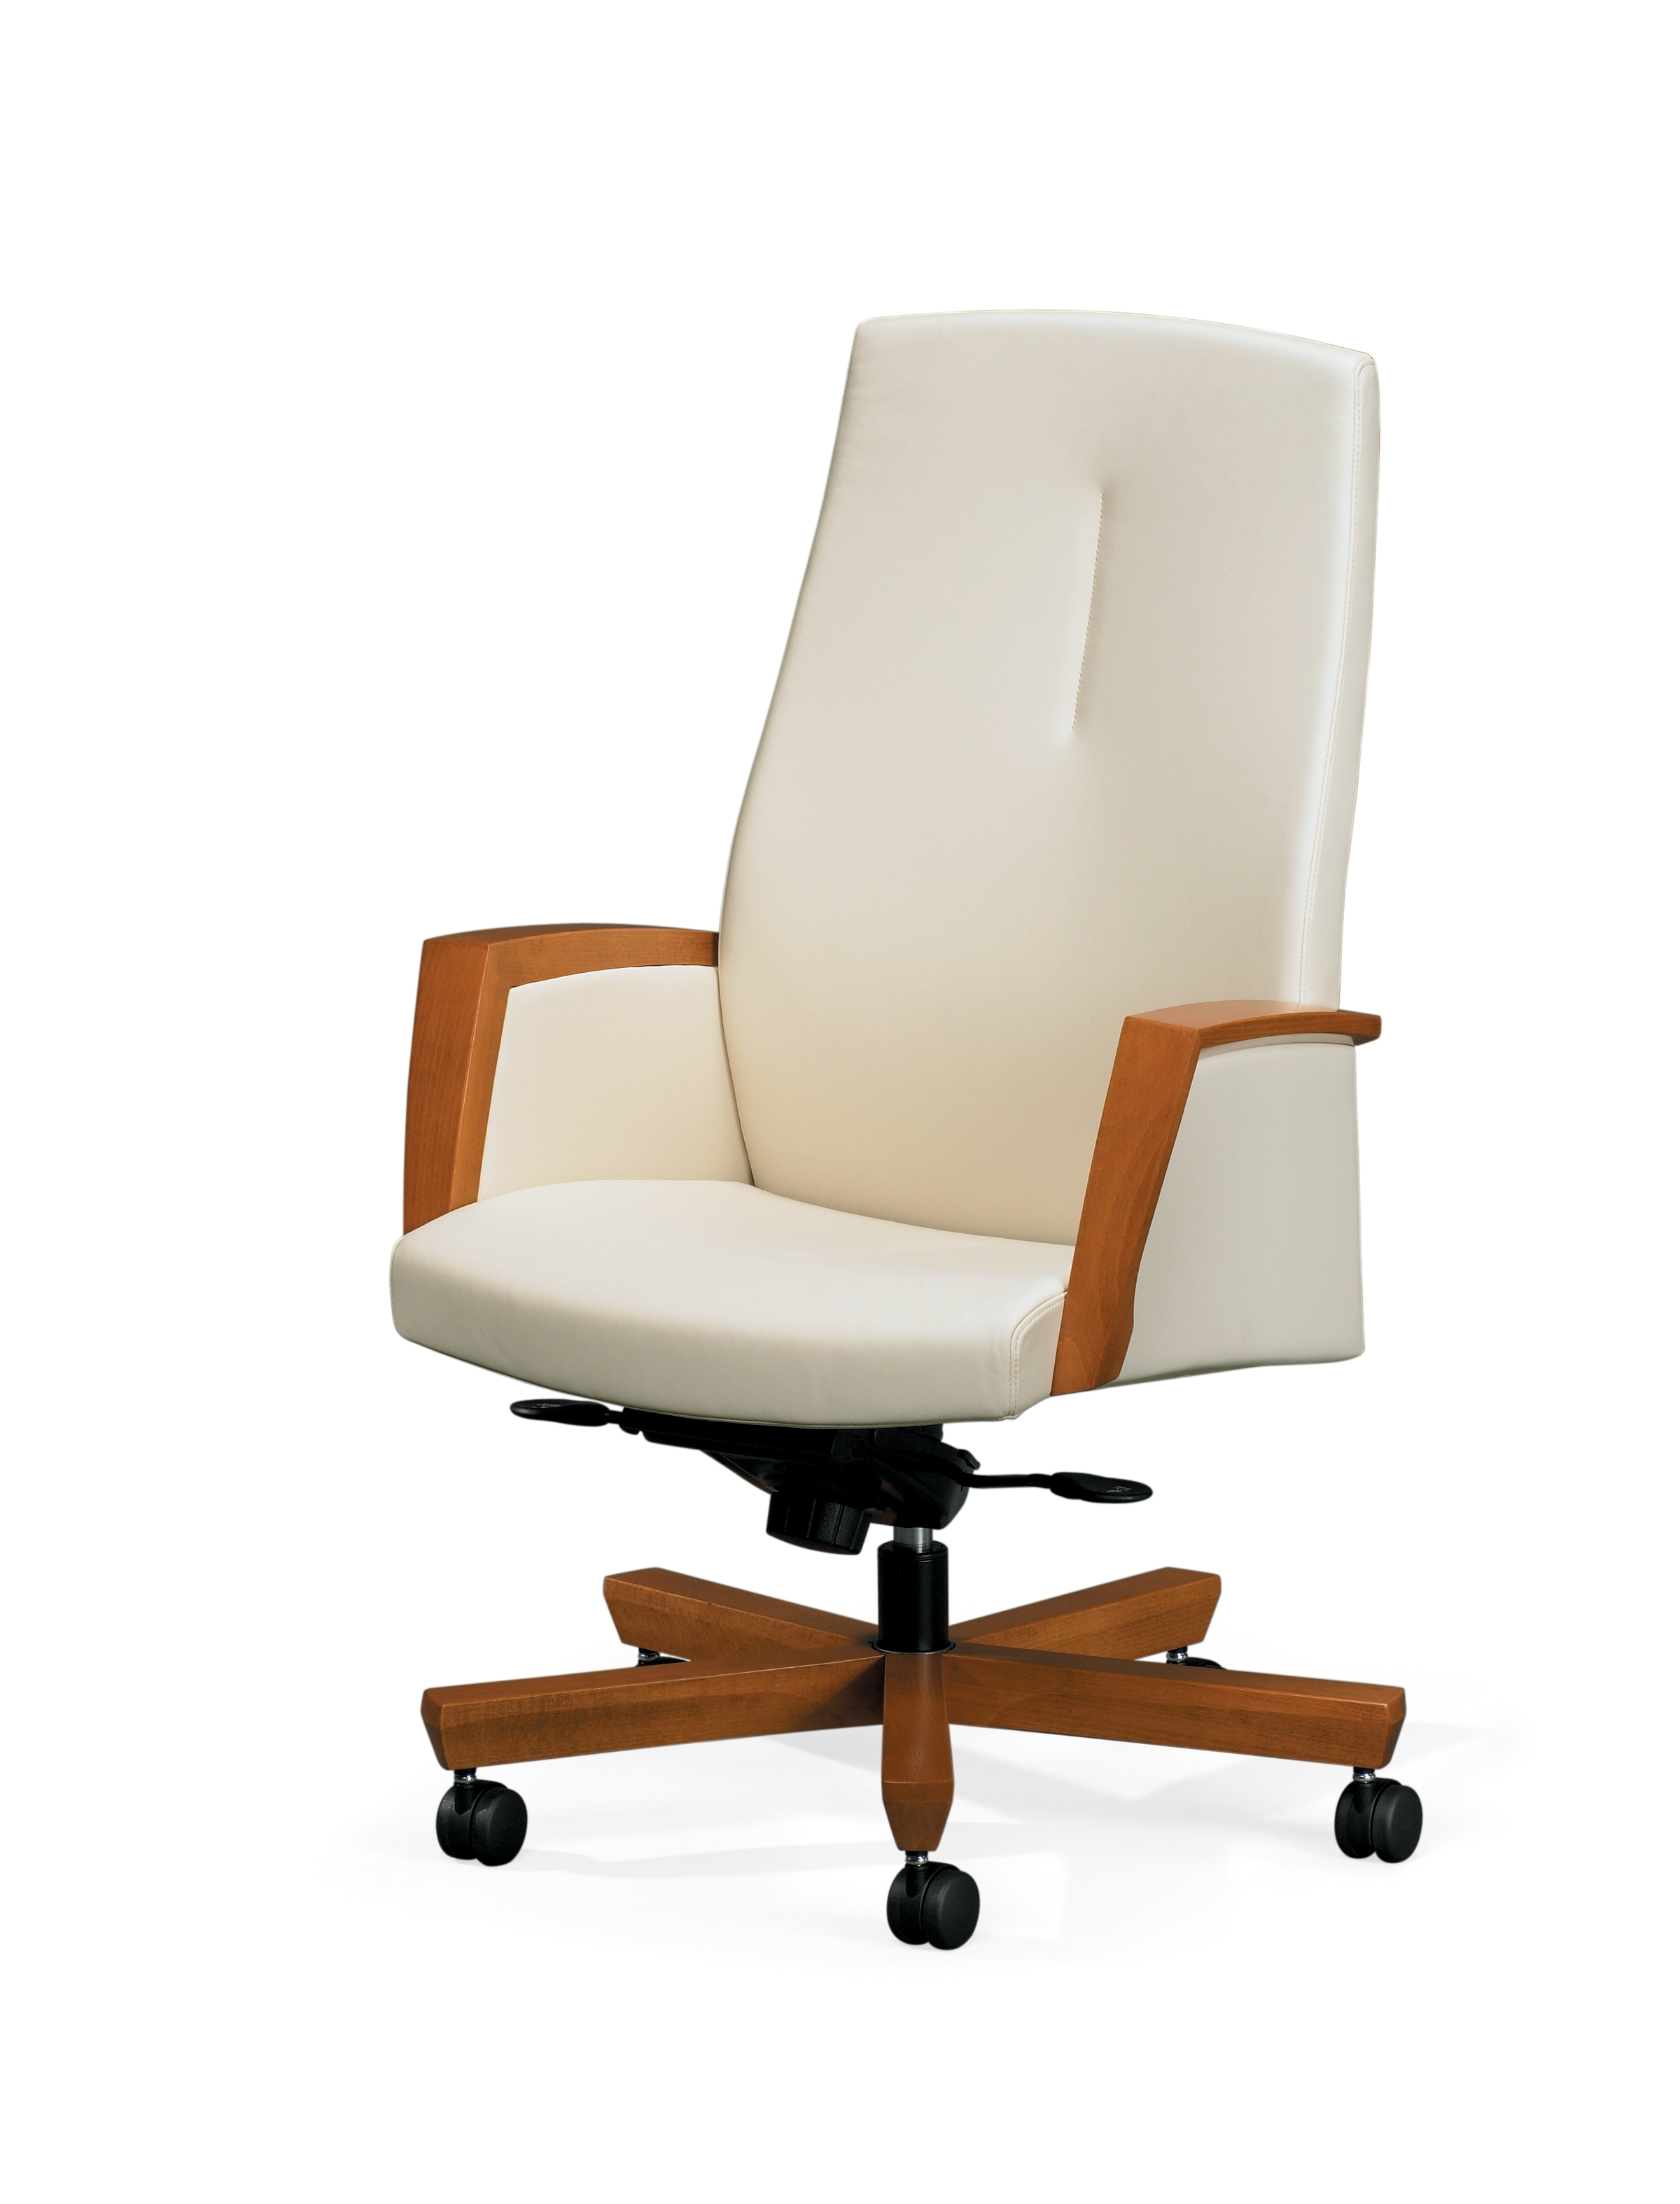 Executive Desk Chair Without Arms Throughout Preferred Paoli Diverge Office Chair – Contemporay And Transitional Seating (Gallery 17 of 20)